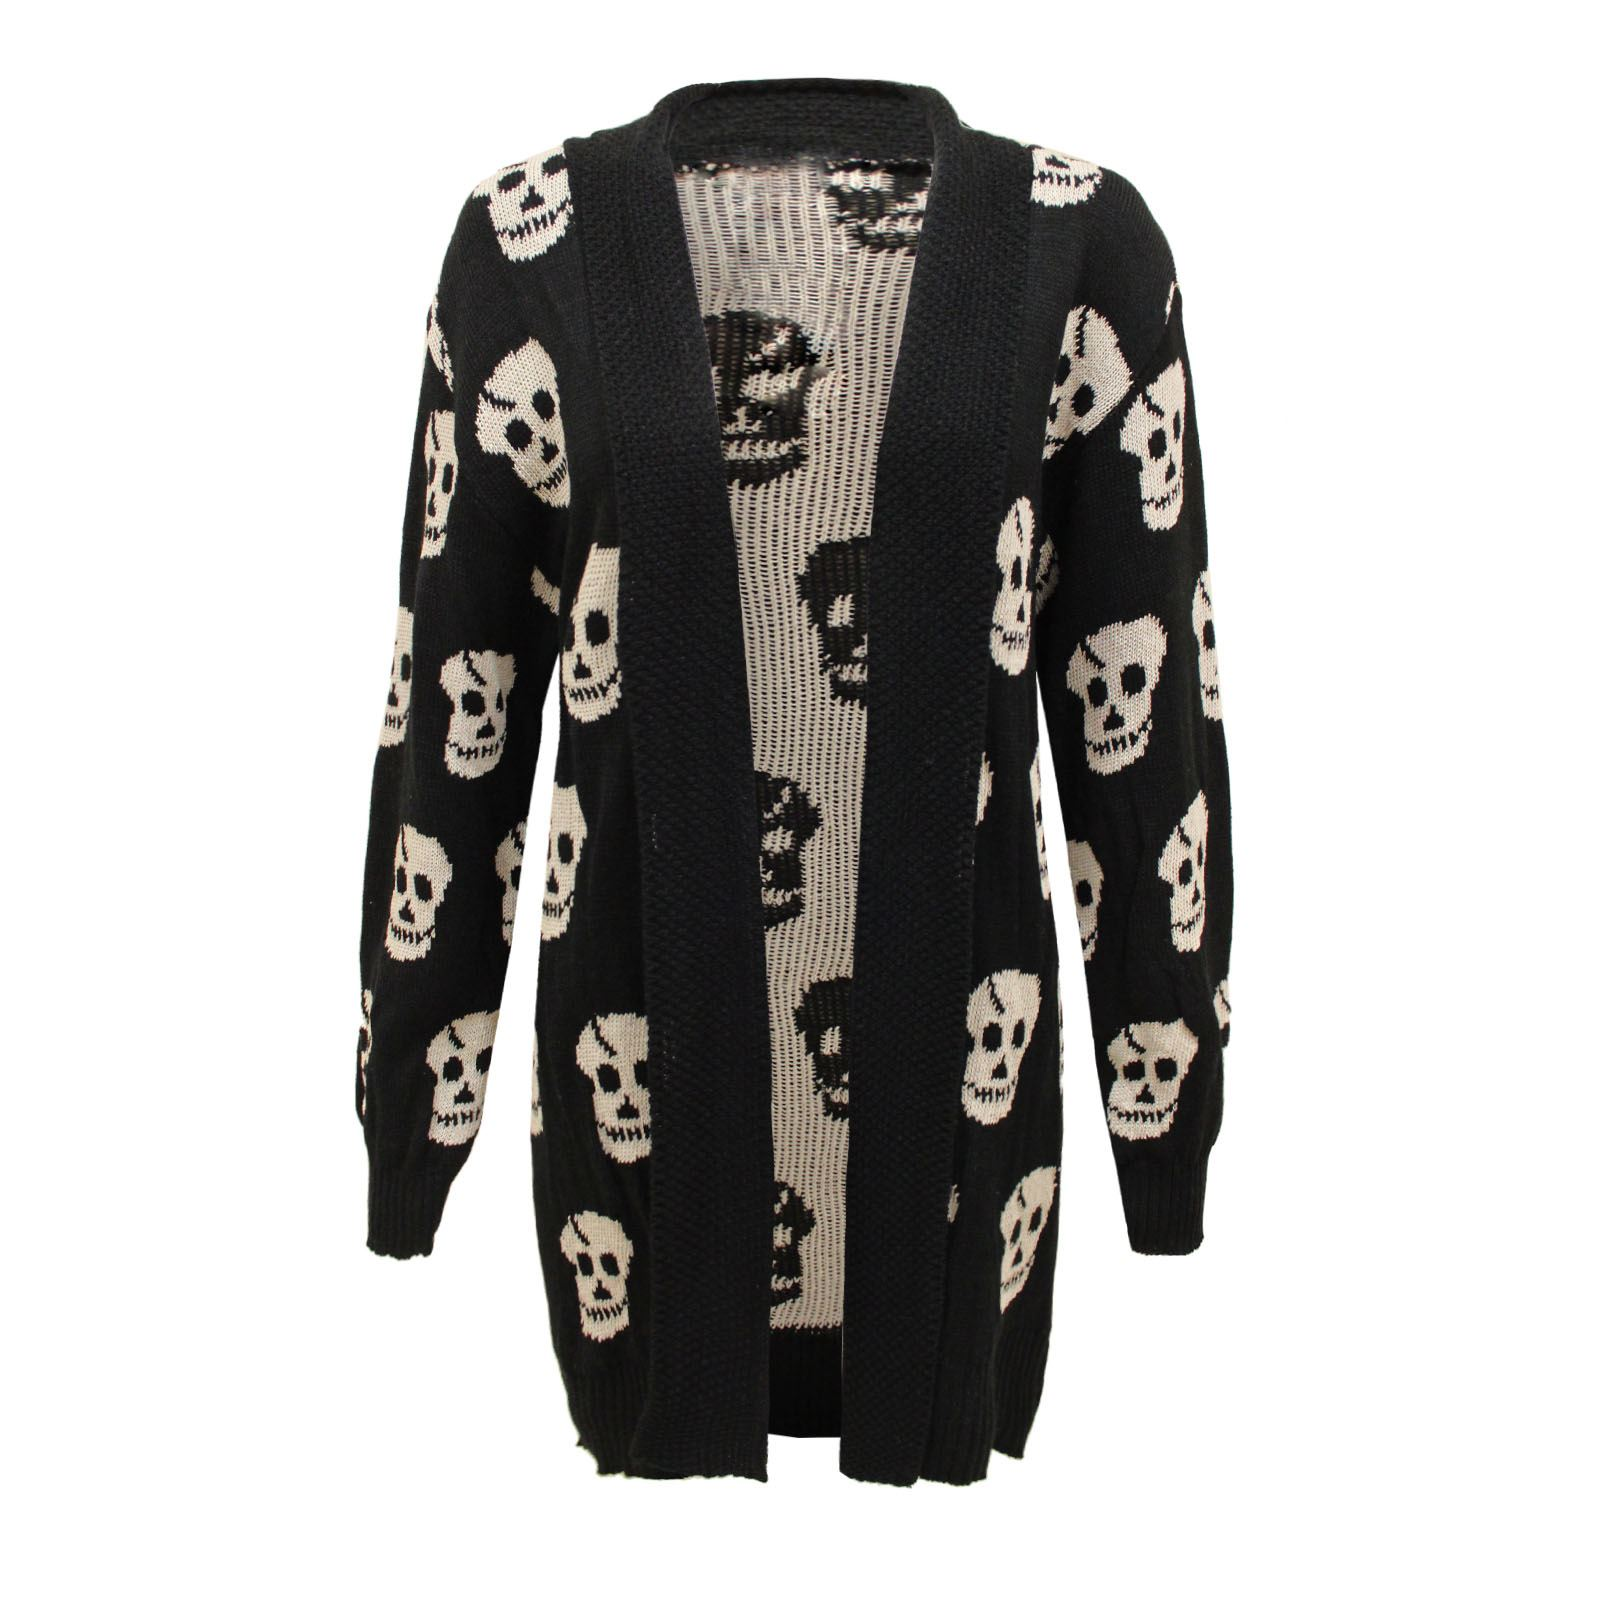 new womens long sleeve skull print open cardigan knitted. Black Bedroom Furniture Sets. Home Design Ideas